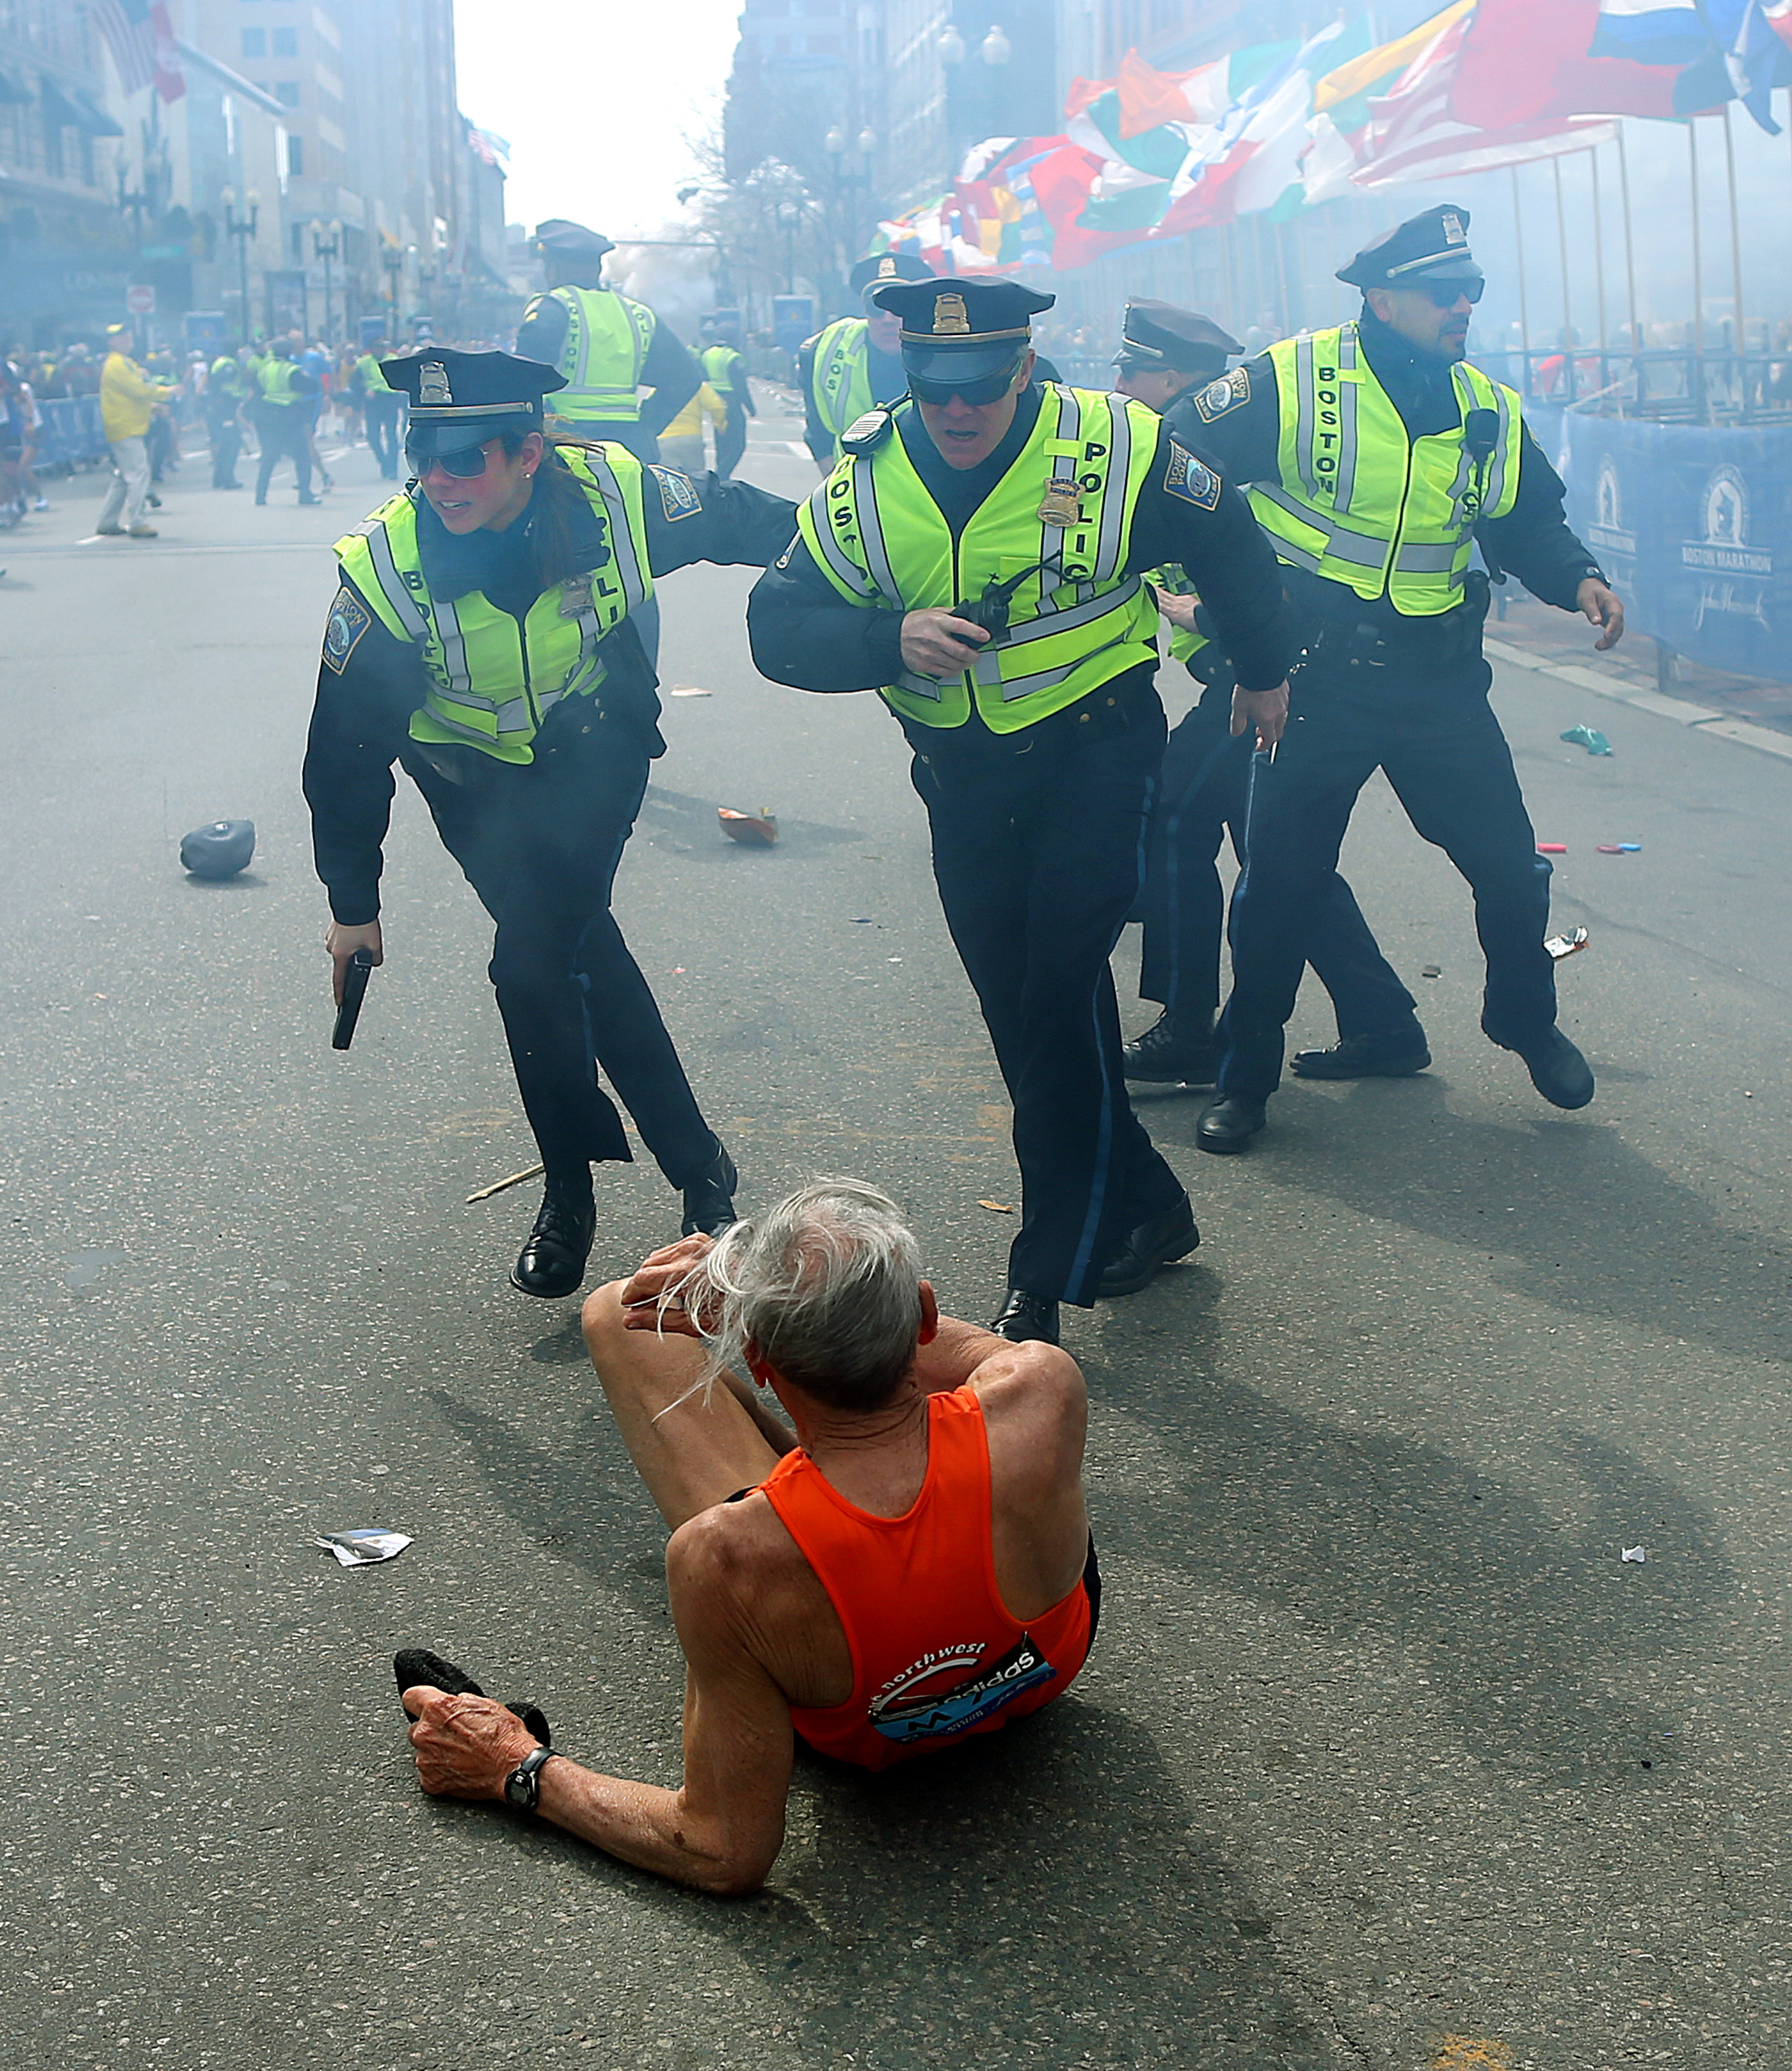 the boston bombing 13042018  the boston marathon bombing was a horrific act of terrorism committed by islamic extremists on us soil here's what you need to know about the depraved.